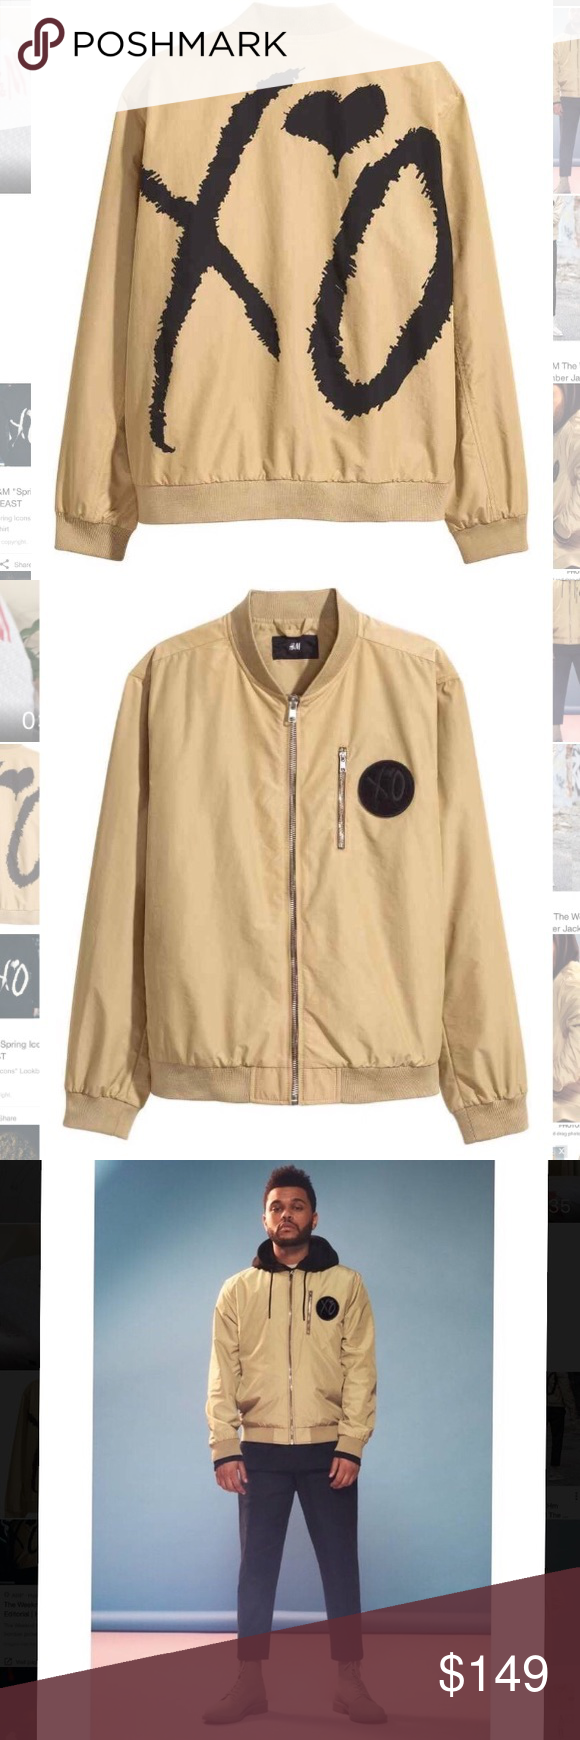 The Weeknd Xo H M Bomber Bomber Jacket Clothes Design Fashion [ 1740 x 580 Pixel ]